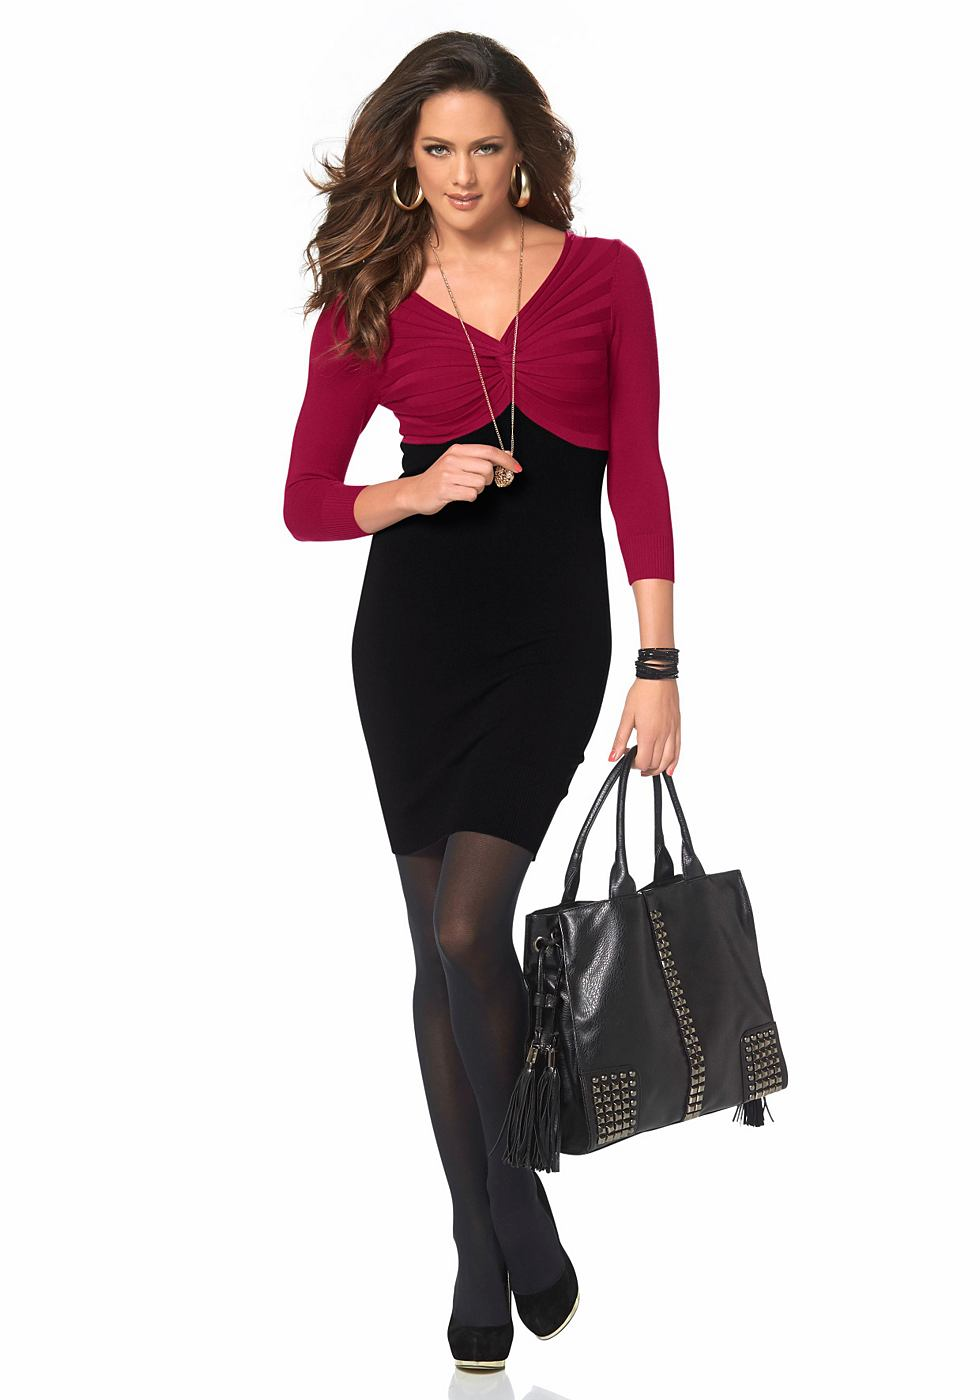 Melrose Tricot-jurk in colourblocking-look rood